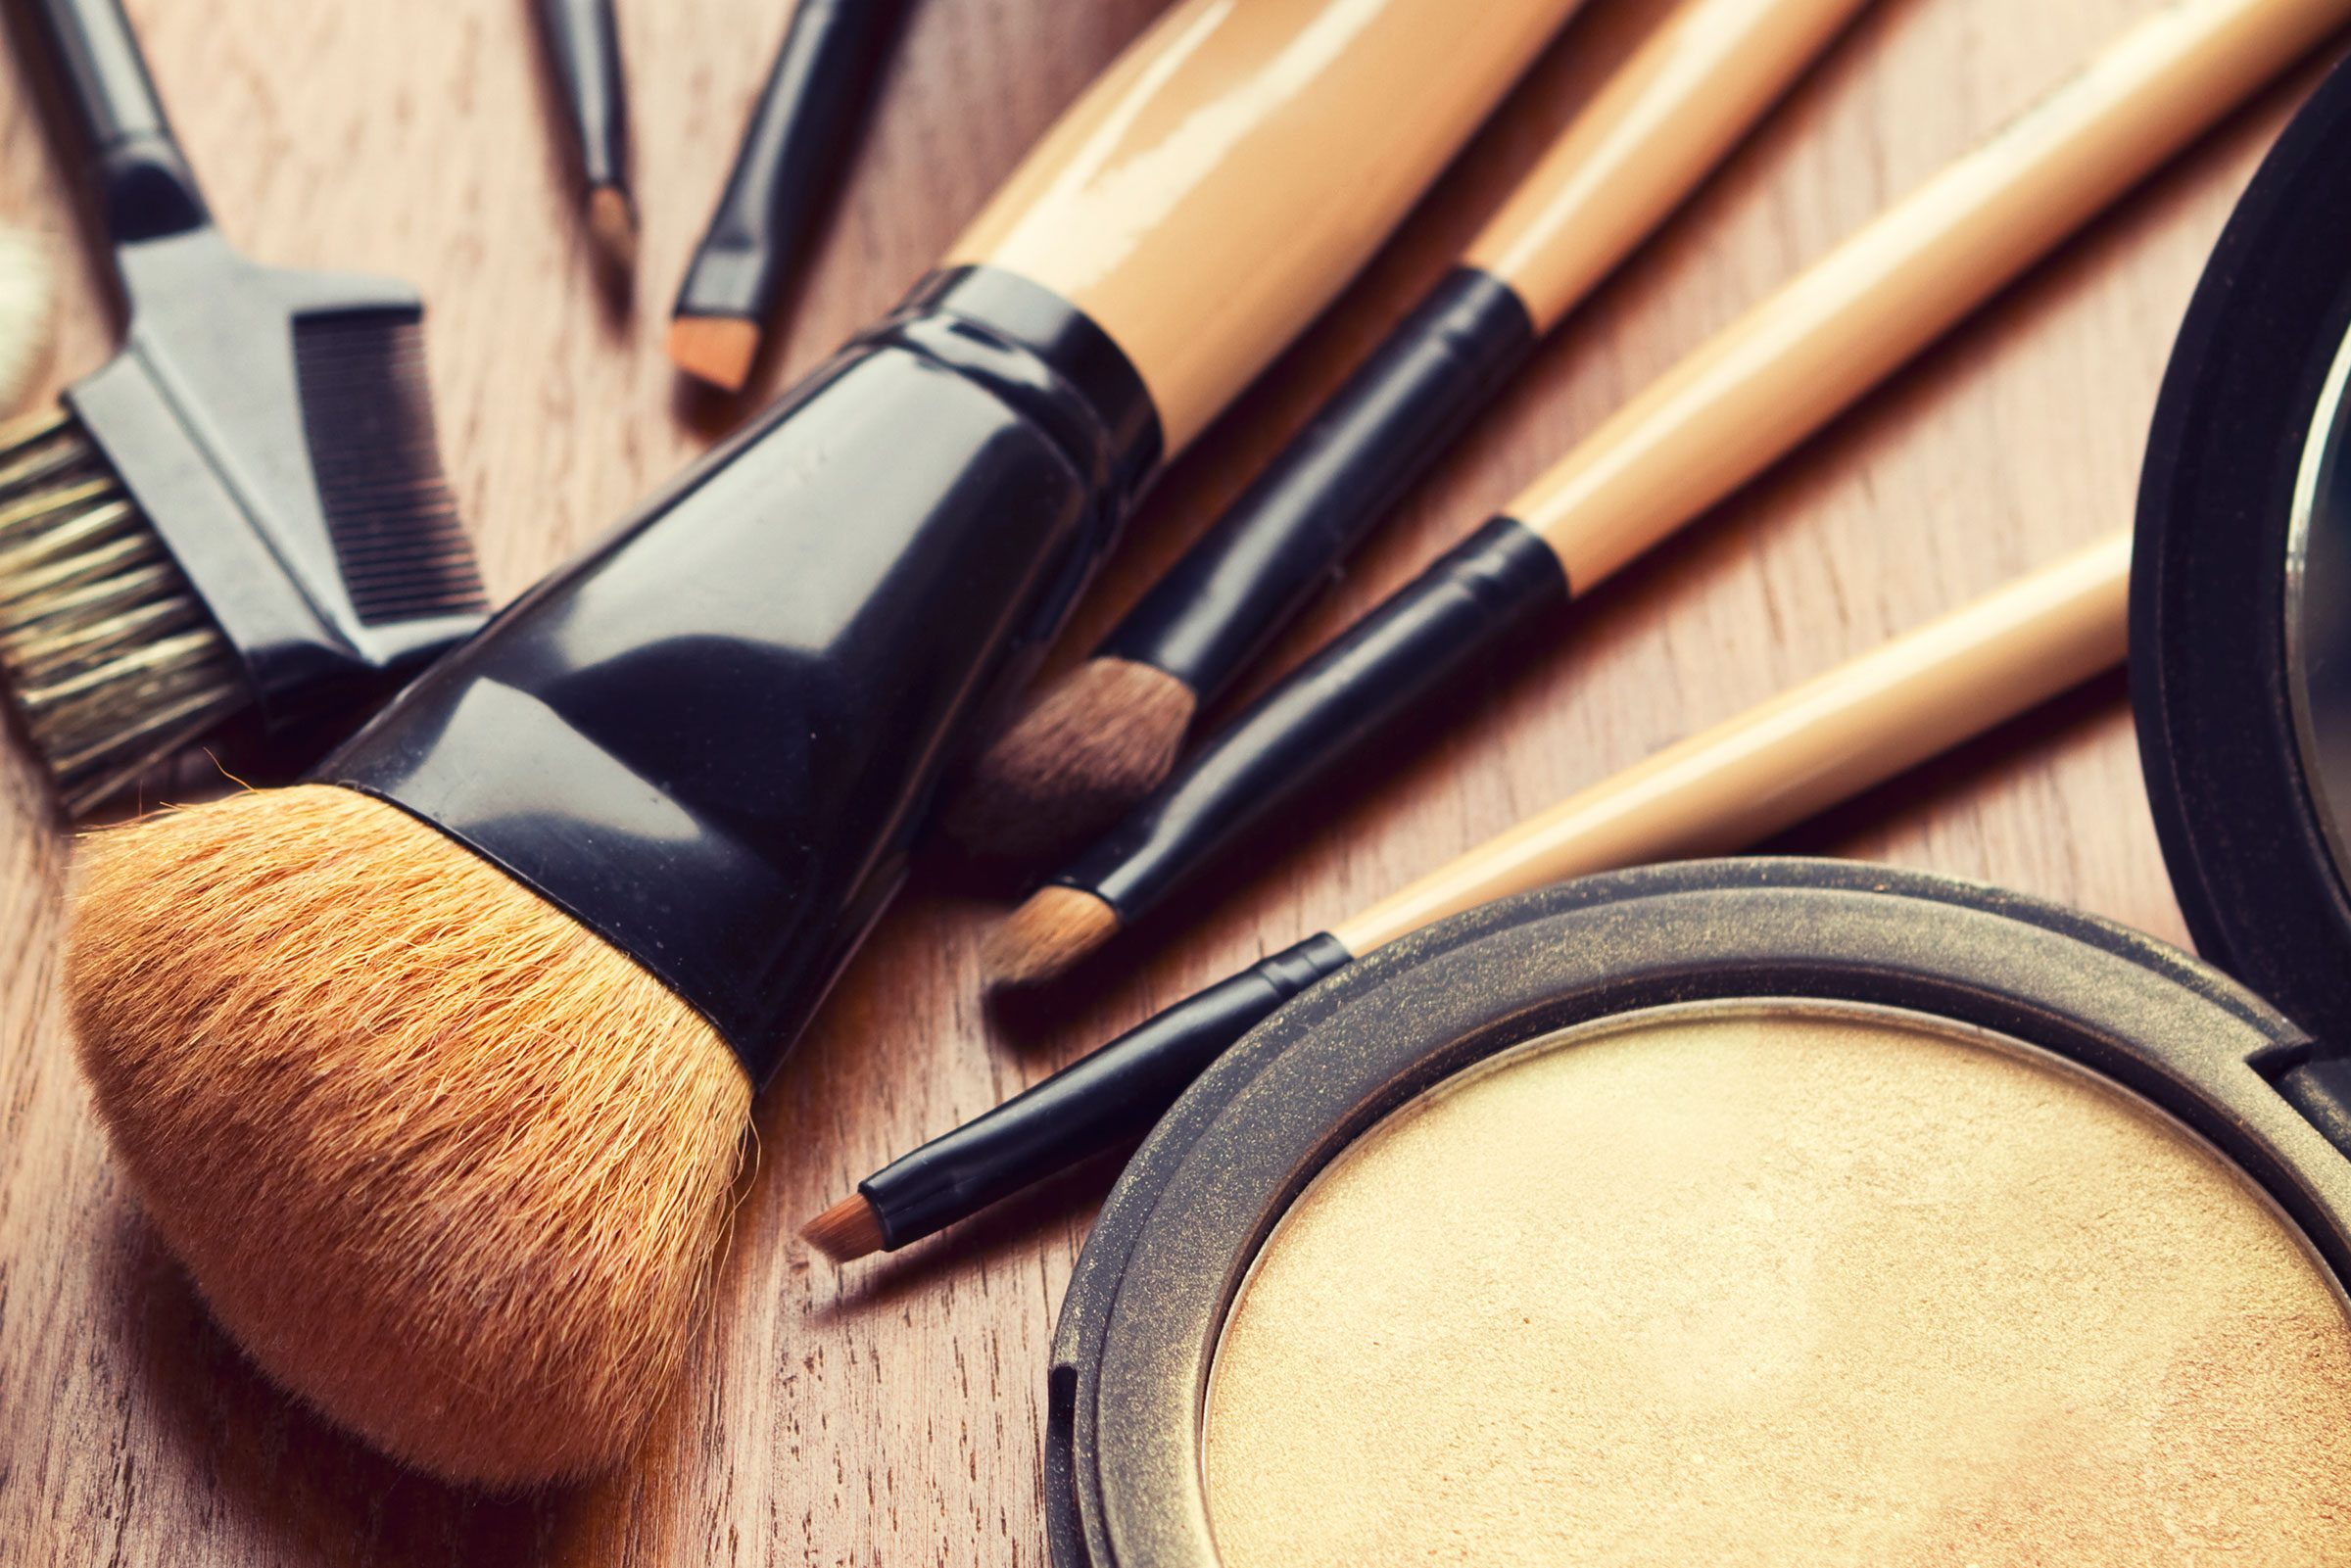 1. Baby your brushes